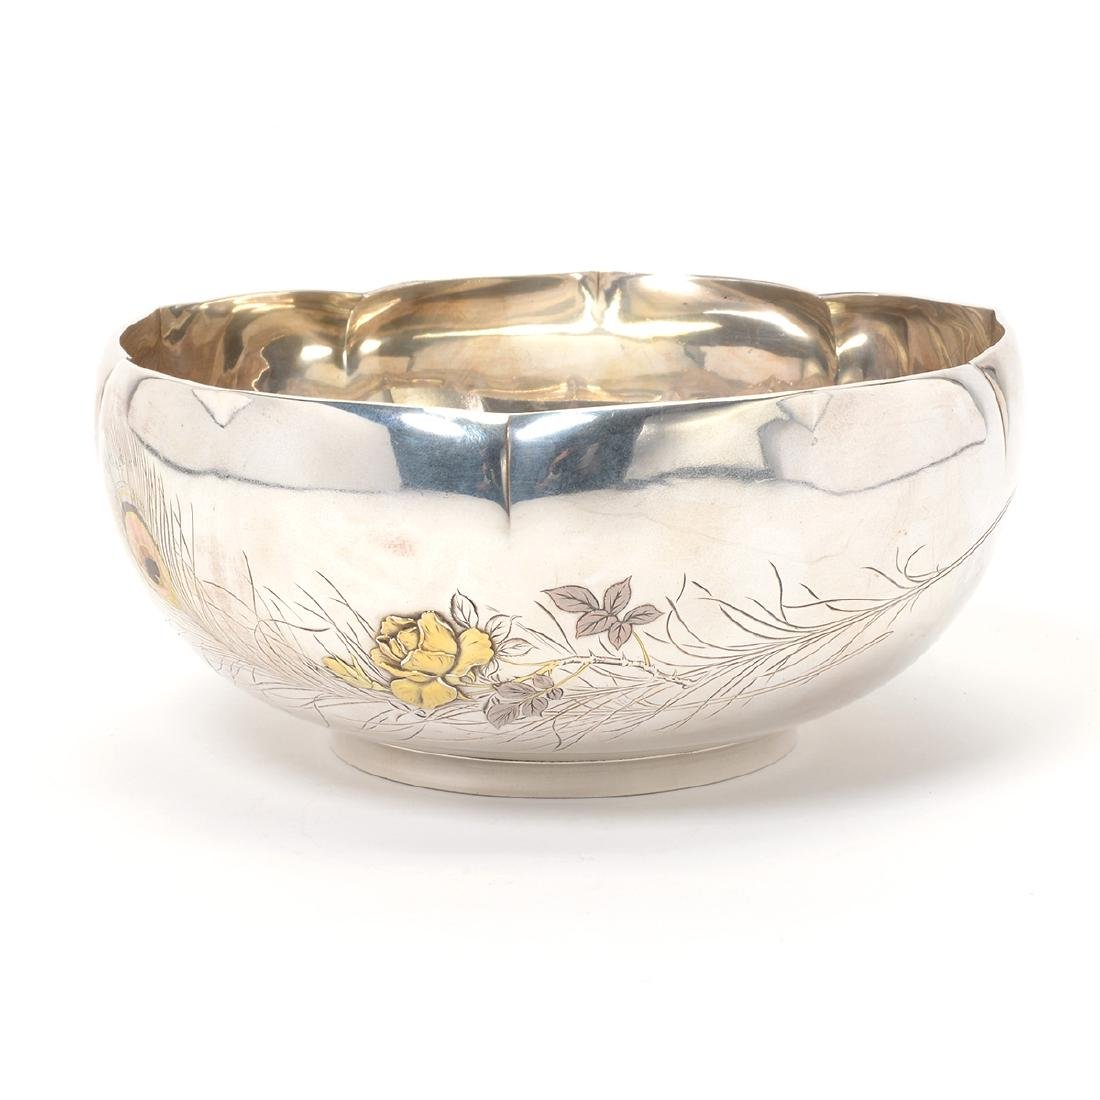 Japanese Silver Punch Bowl, Meiji Period